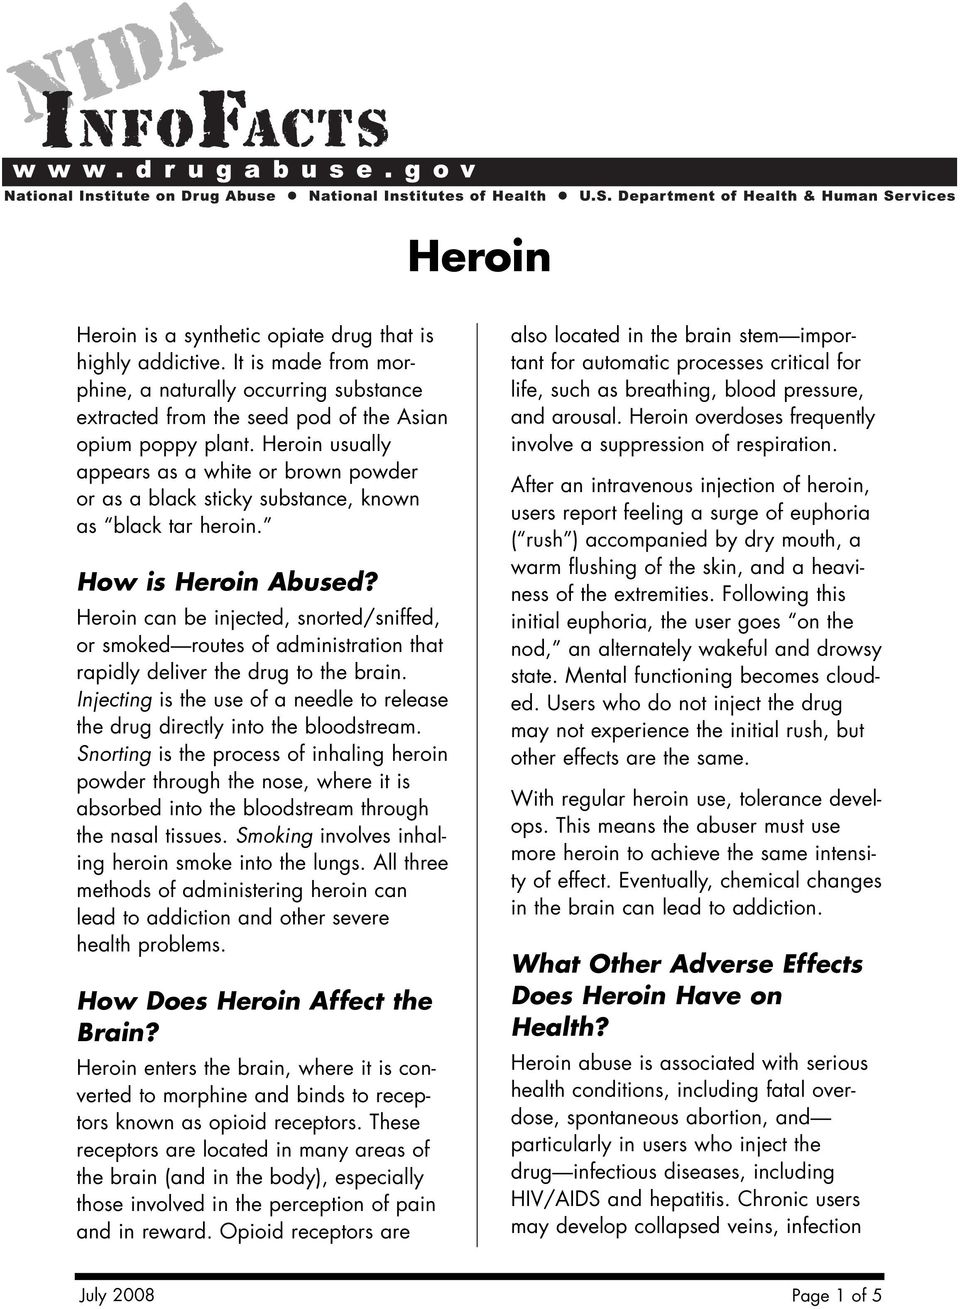 Heroin can be injected, snorted/sniffed, or smoked routes of administration that rapidly deliver the drug to the brain.